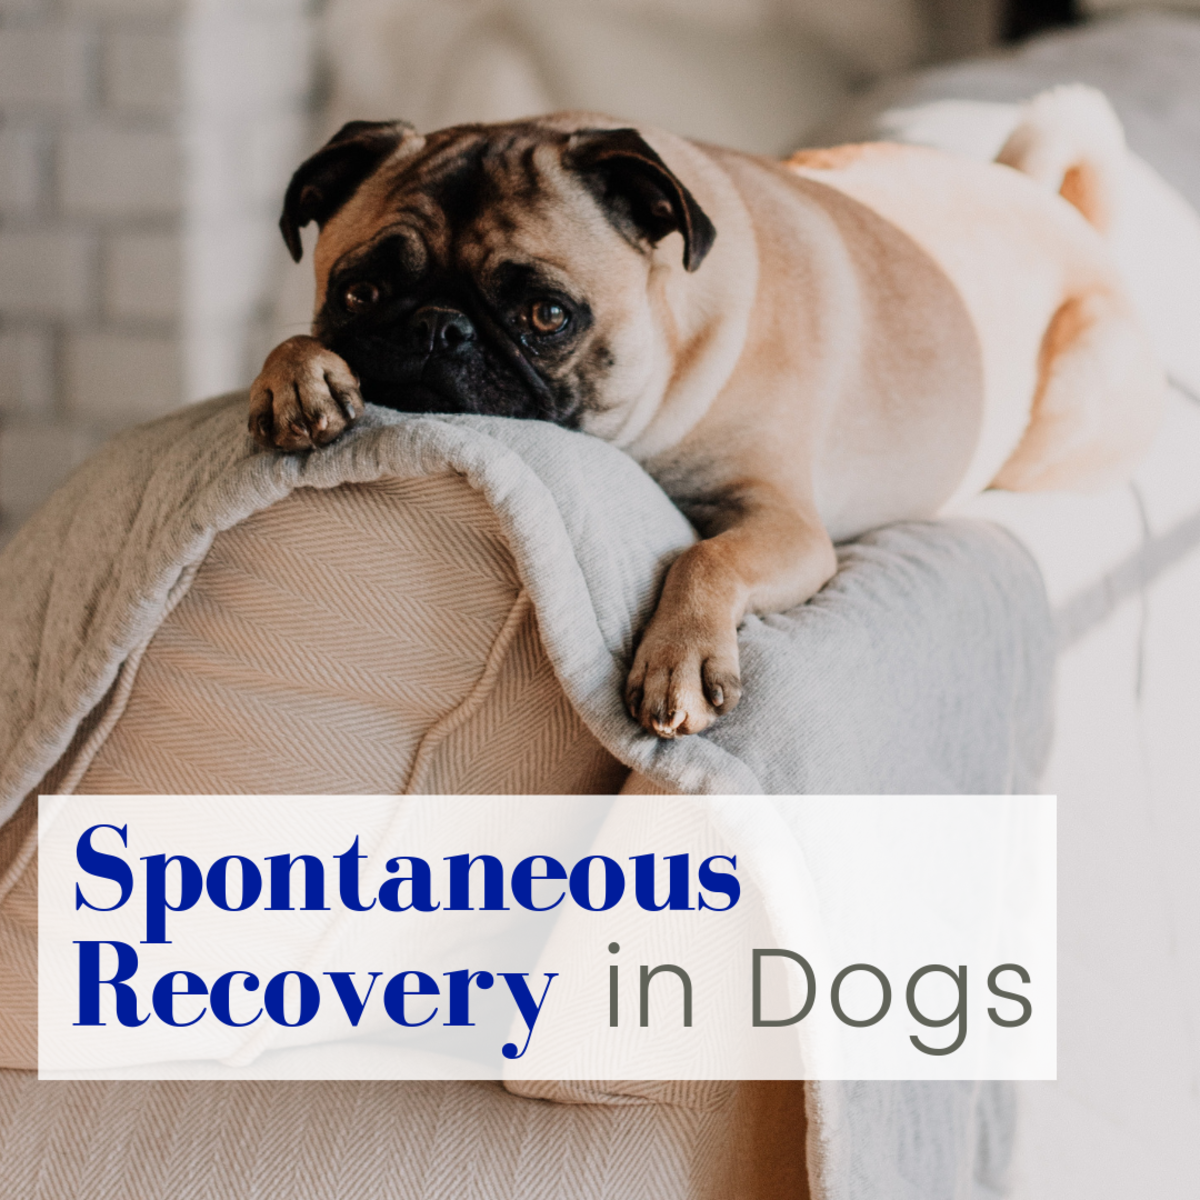 Spontaneous recovery is the reemergence of an extinguished classically conditioned response.